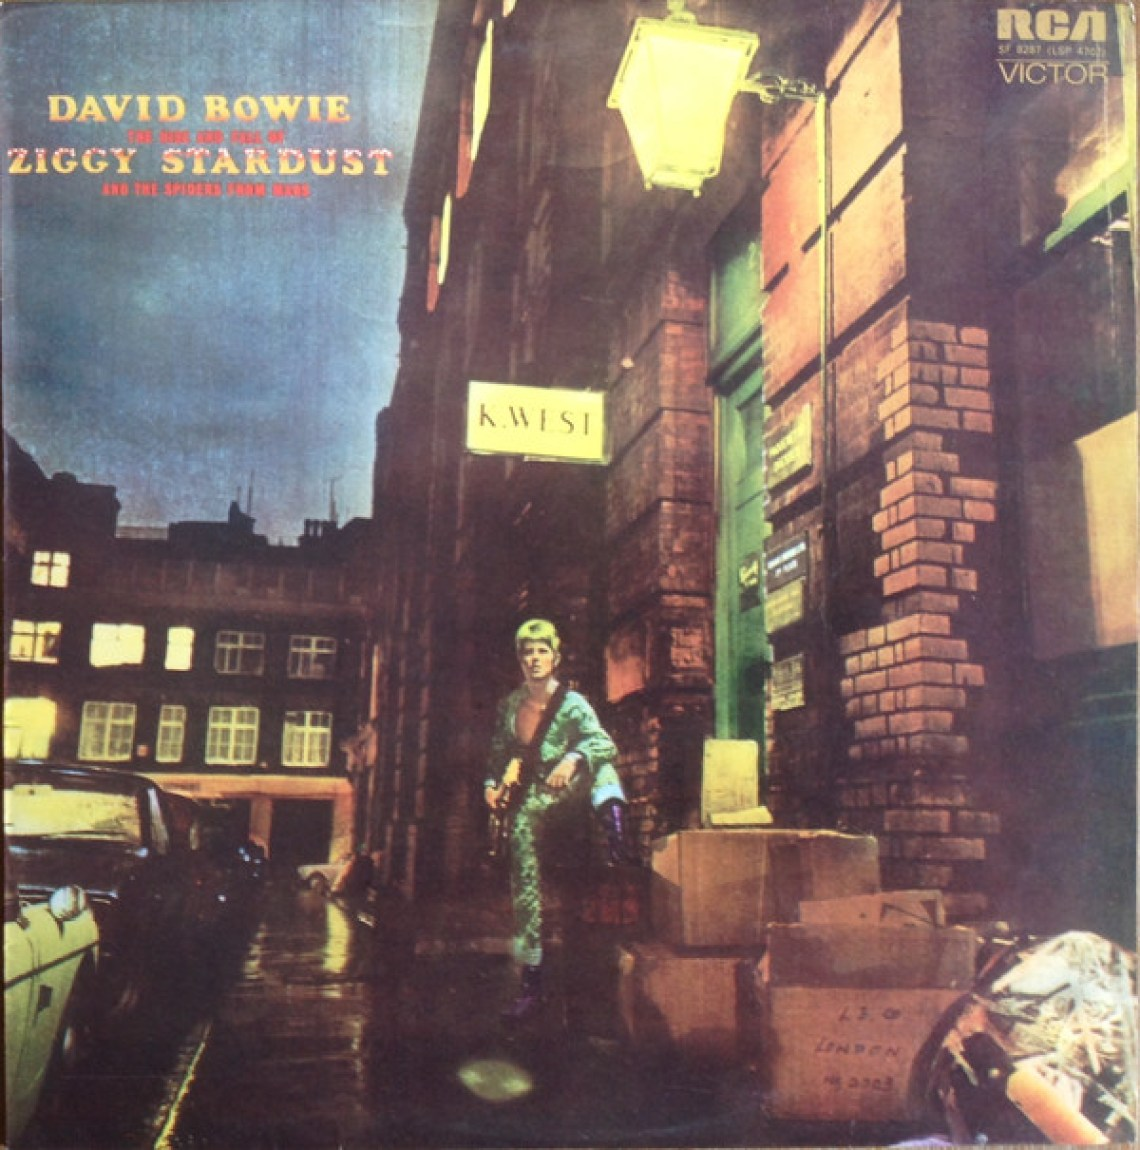 The Rise And Fall Of Ziggy Stardust And The Spiders From Mars (1972) album cover, David Bowie.